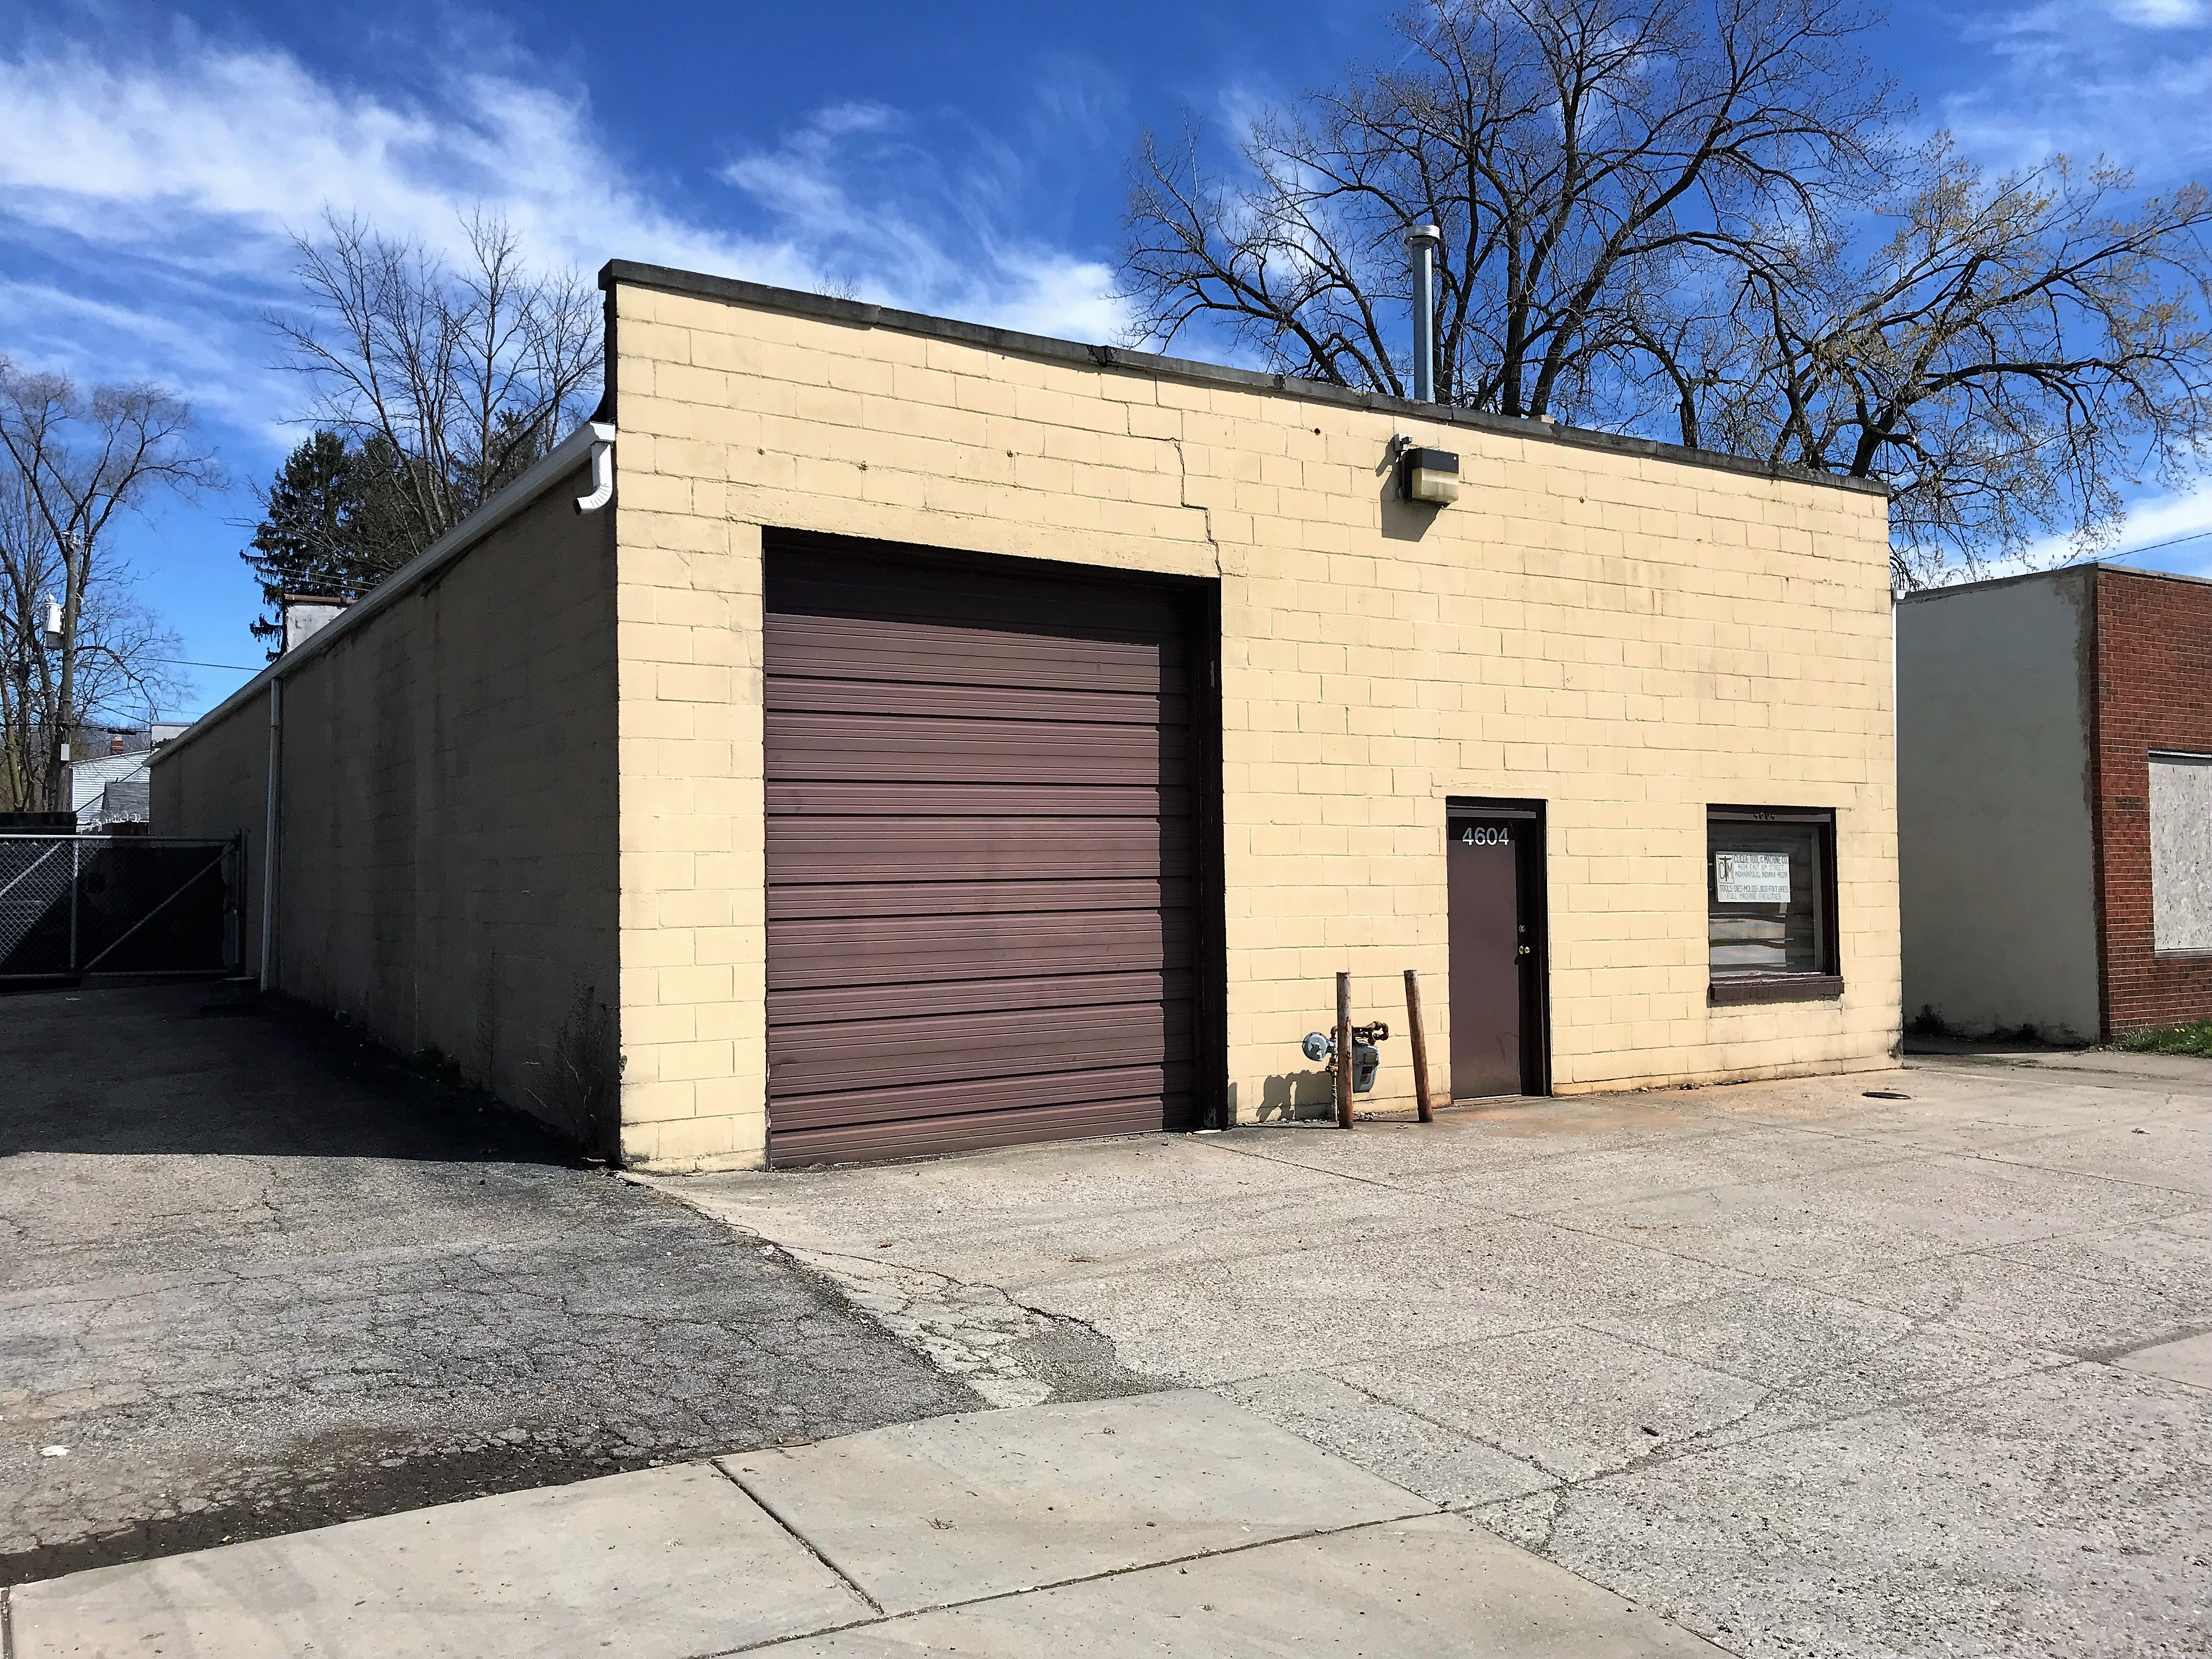 4,000 SF Commercial Building In Indianapolis, IN